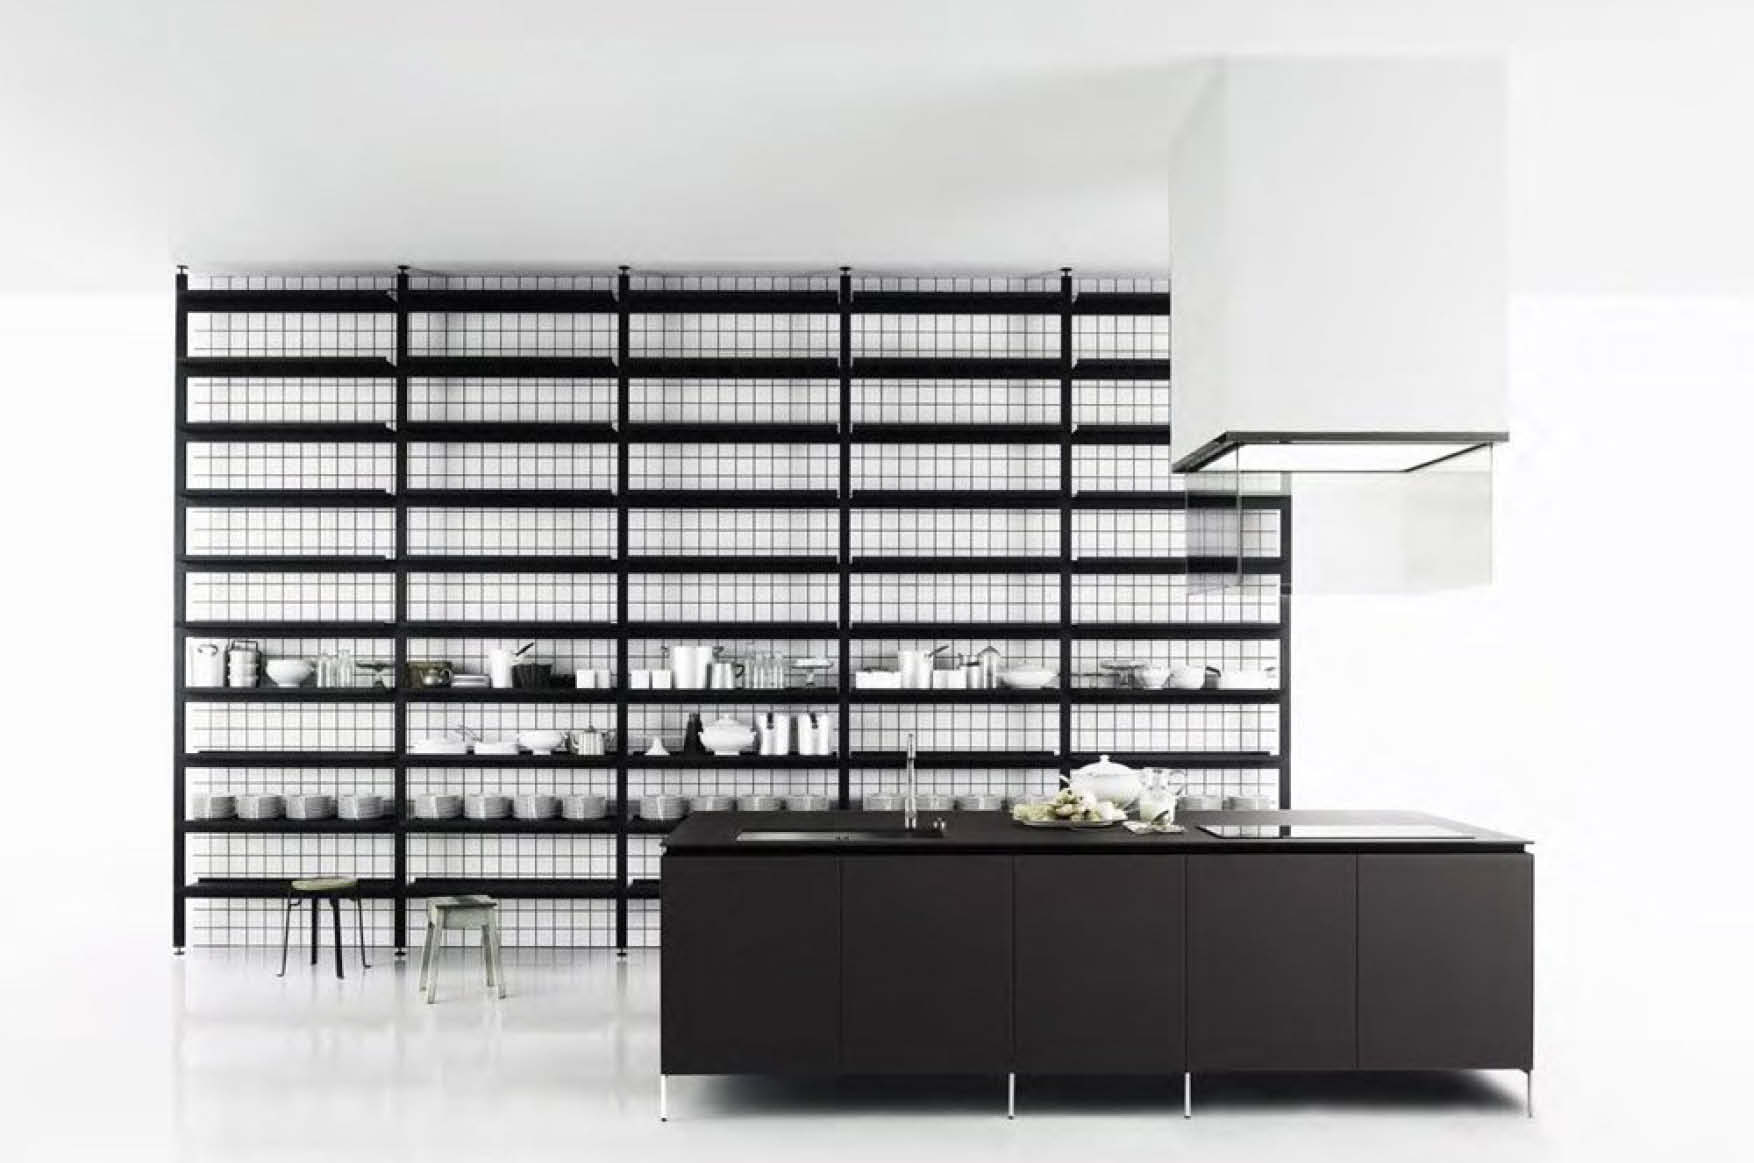 boffi xila kitchen with suspended black island with ceiling hood in front of a boffi shelf